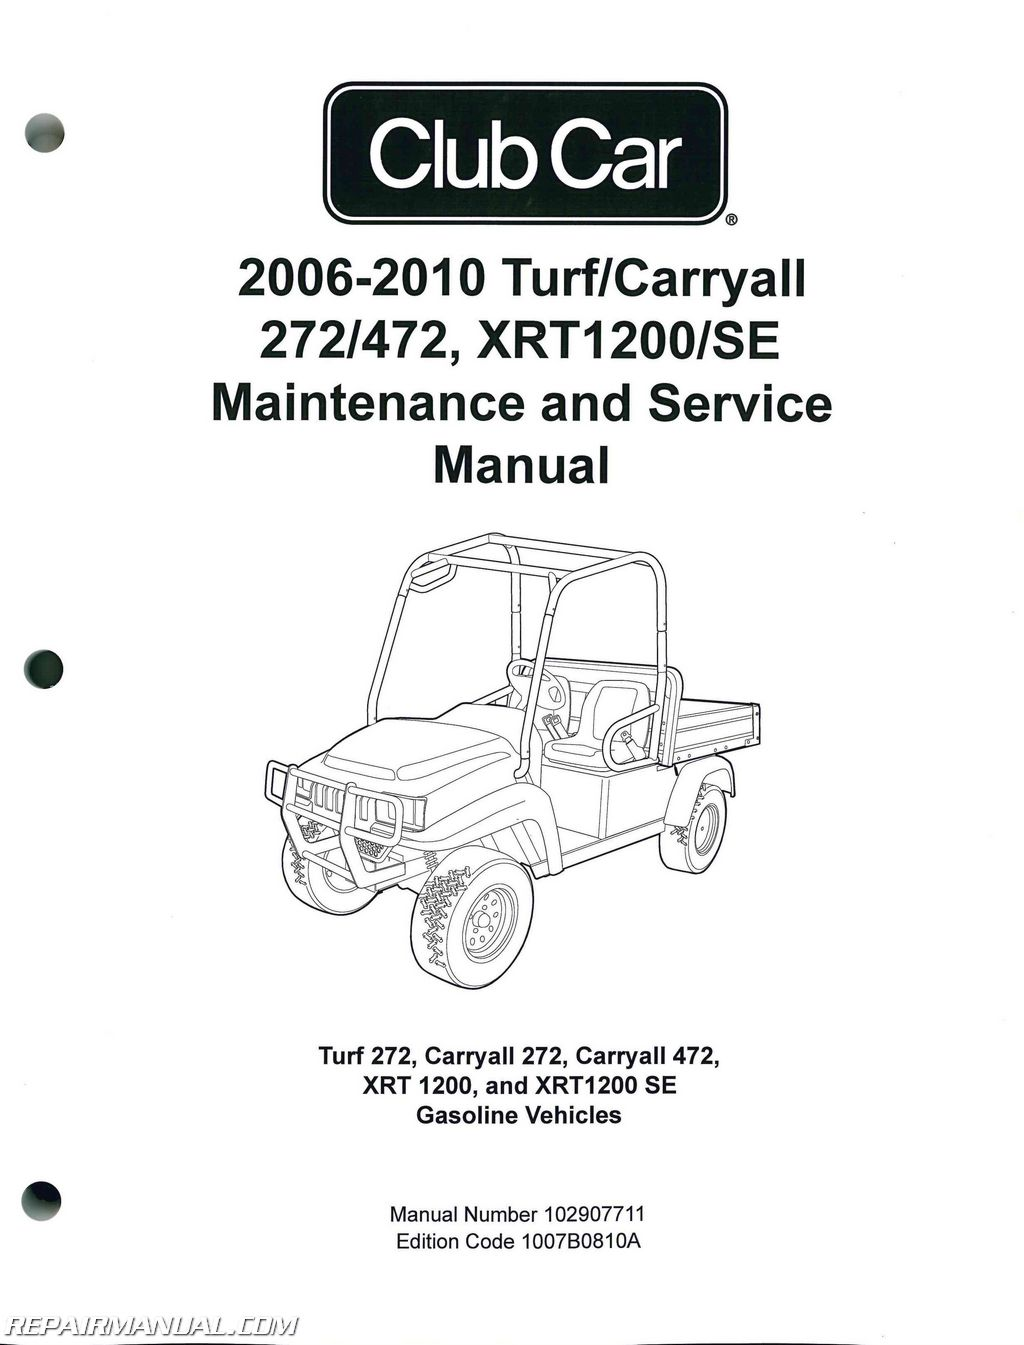 2006-2010 Club Car Turf, Carryall 272 472, XRT1200 SE Turf 272 ... on 2005 club car wiring diagram, 2000 club car wiring diagram, 2006 club car suspension, 1991 club car wiring diagram, 1988 club car wiring diagram, 1990 club car wiring diagram, 1984 club car wiring diagram, 2006 club car specifications, 2007 club car wiring diagram, club car precedent headlight wiring diagram, 2006 club car engine, 1980 club car wiring diagram, 2008 club car wiring diagram, 2006 club car parts, 2001 club car wiring diagram, club car carryall wiring diagram, club car golf cart parts diagram,